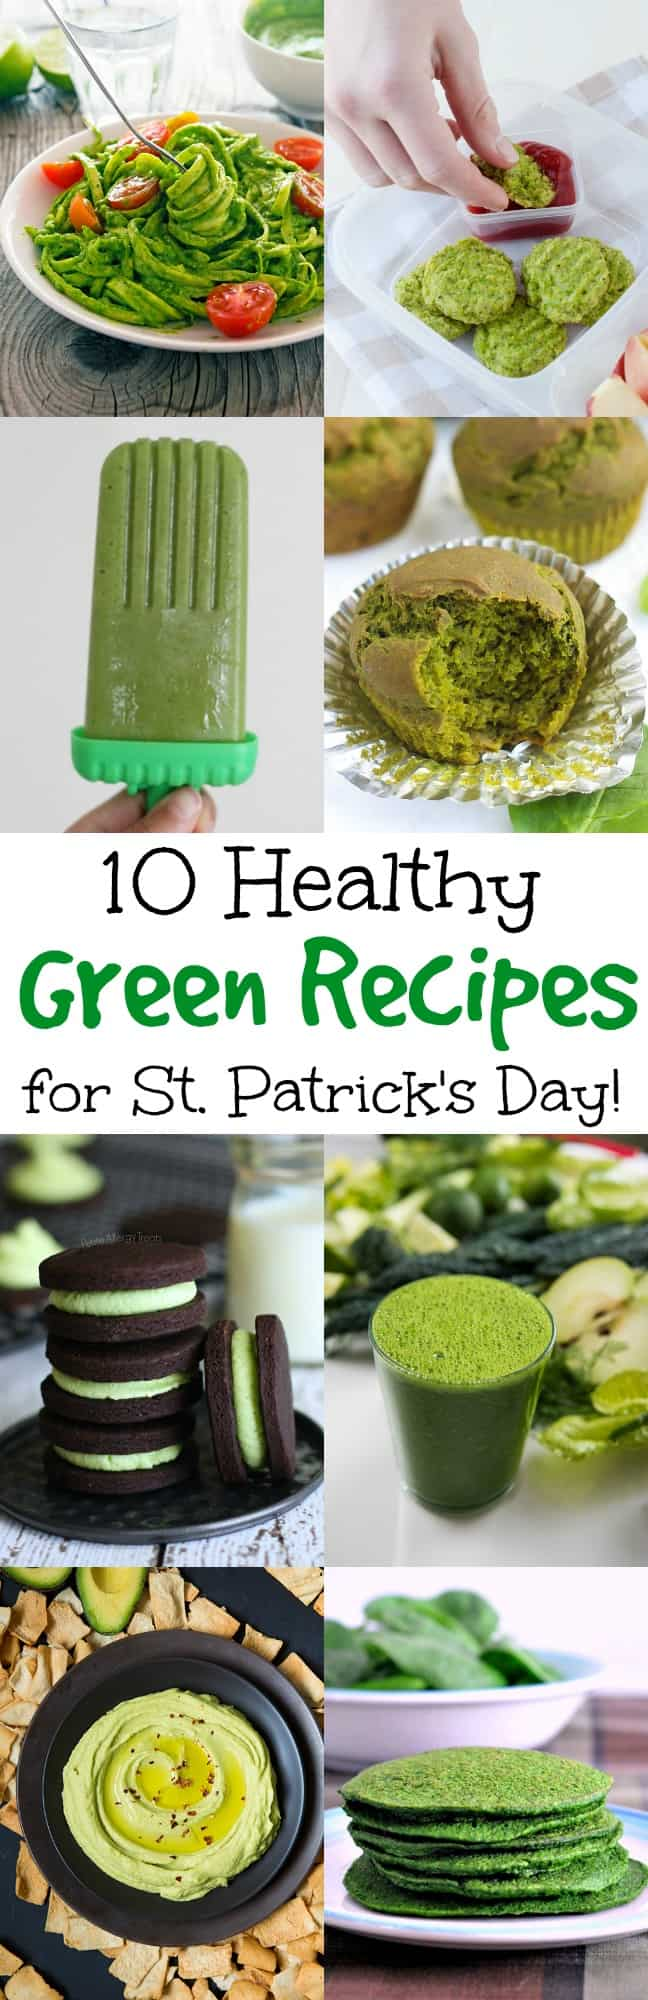 Use this holiday to get kids excited about eating vegetables. These healthy green recipes for St. Patrick's Day are festive and so delicious! Kid-approved.